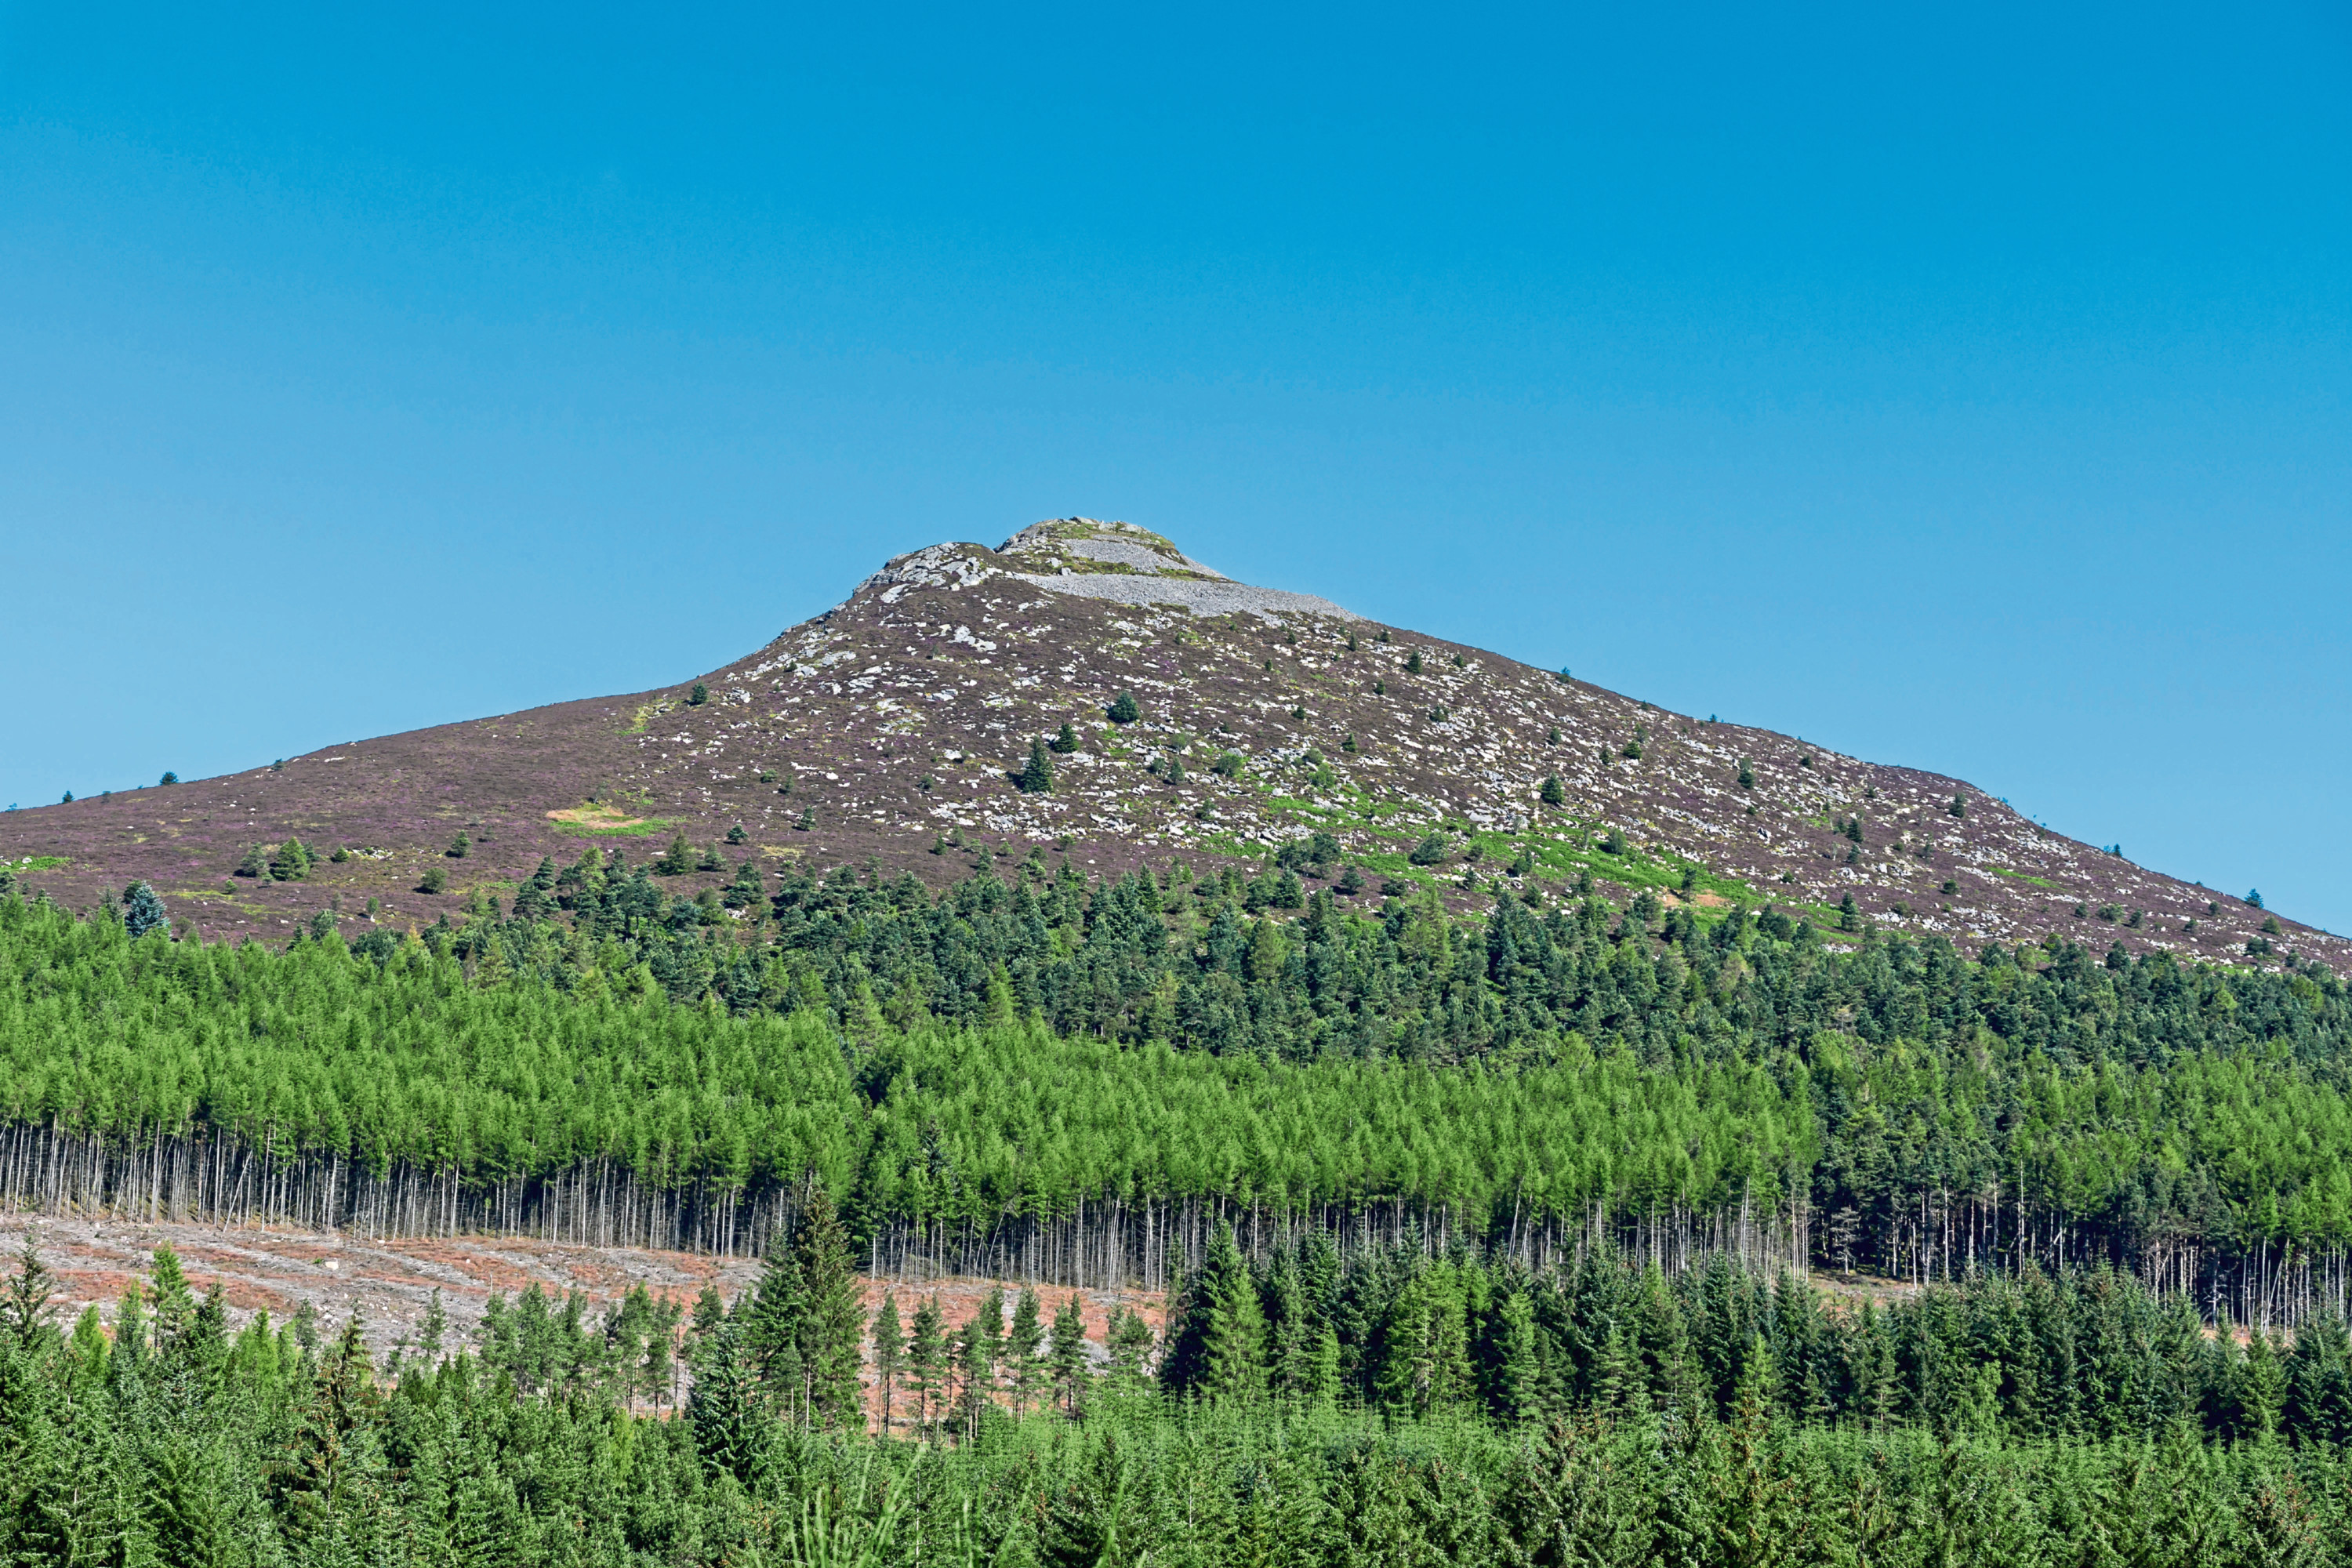 The remains of the former Maiden Castle, once owned by a prince, were found on the slopes of Bennachie